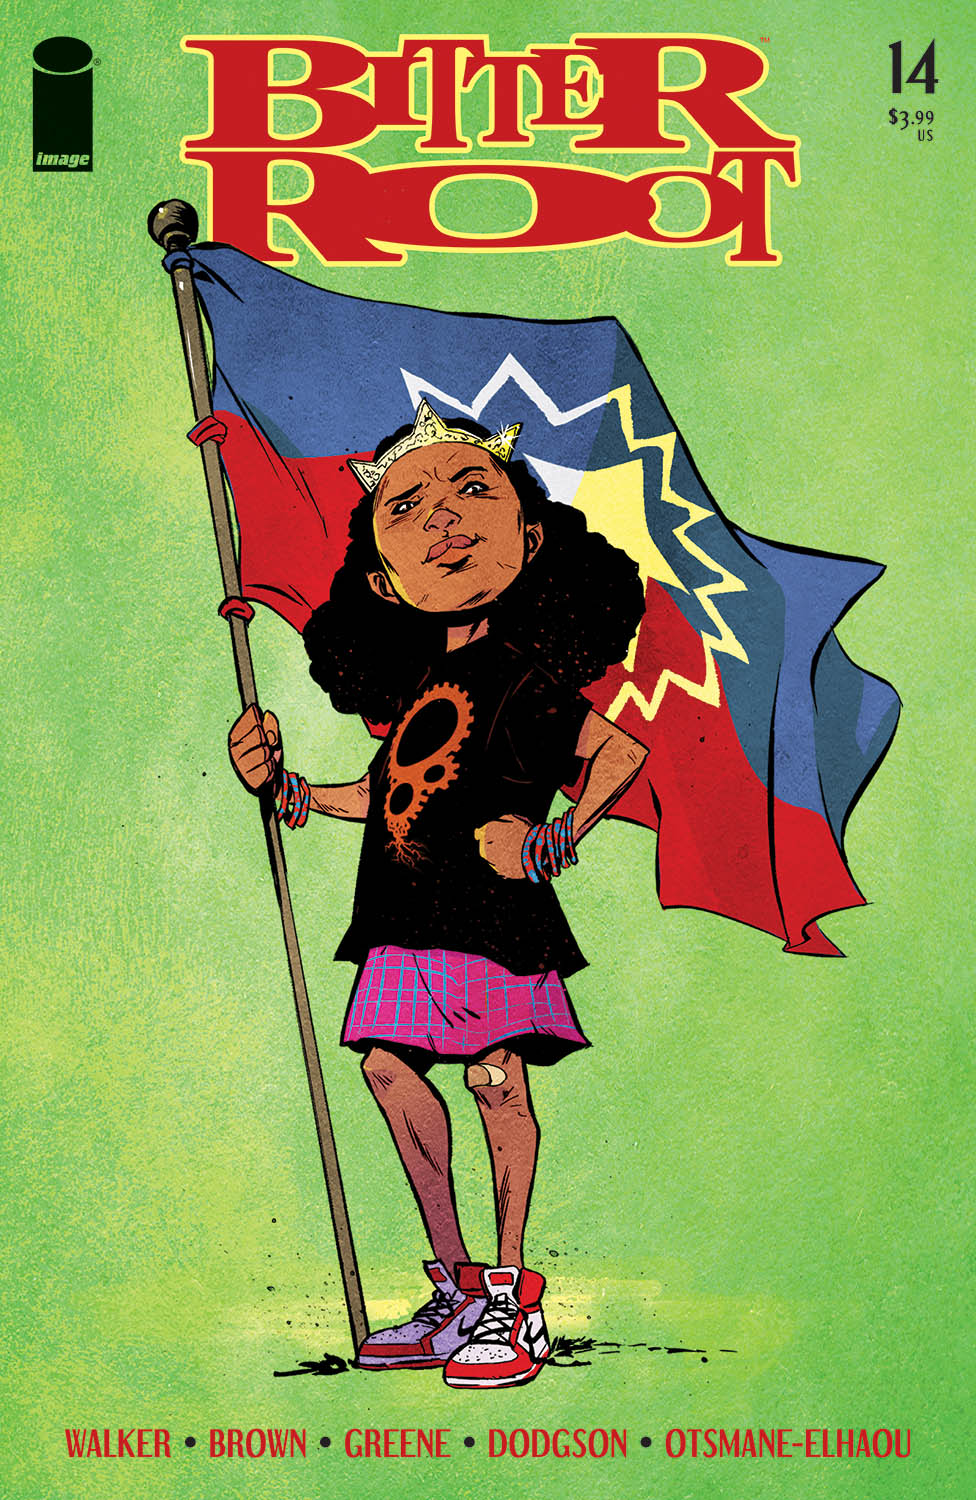 Juneteenth Commemorative Cover for Bitter Root #14